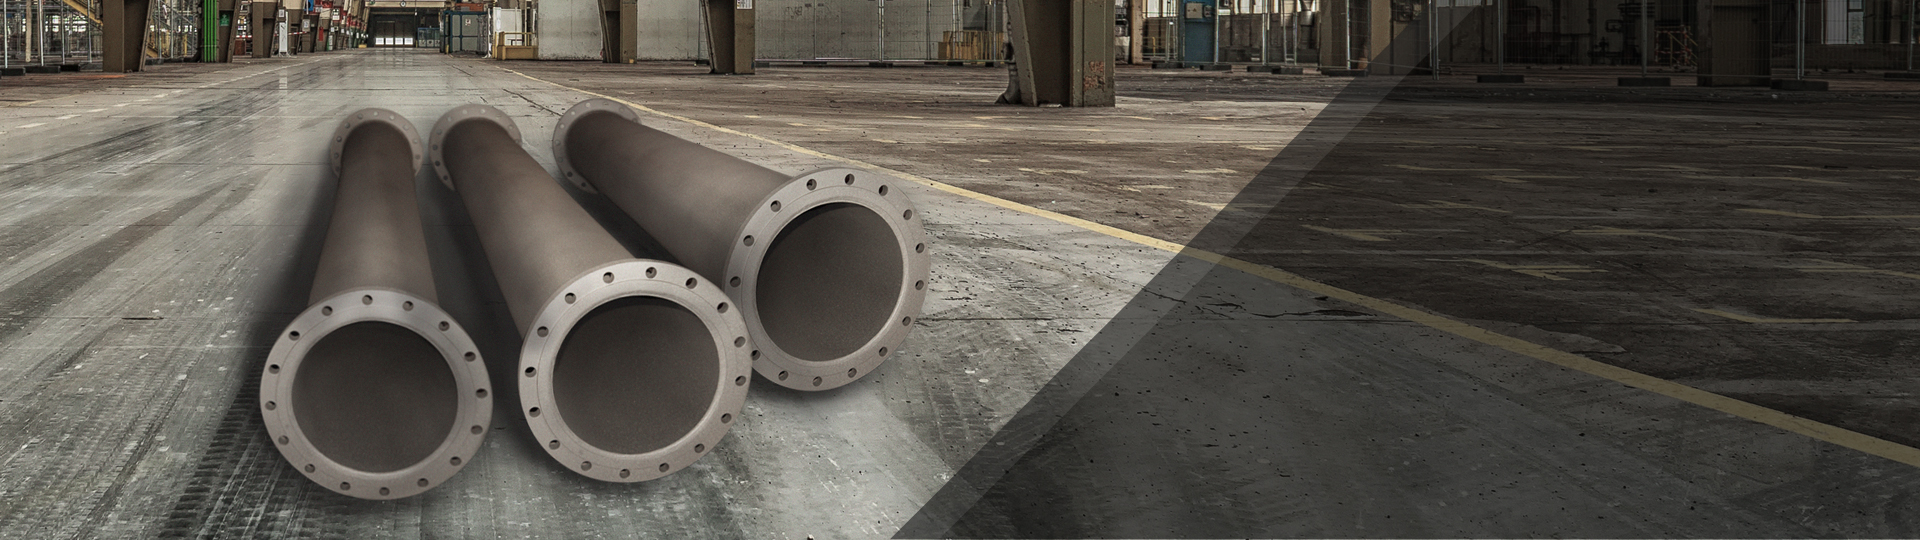 Technological piping lined with anti-corrosion and abrasion resistant coating